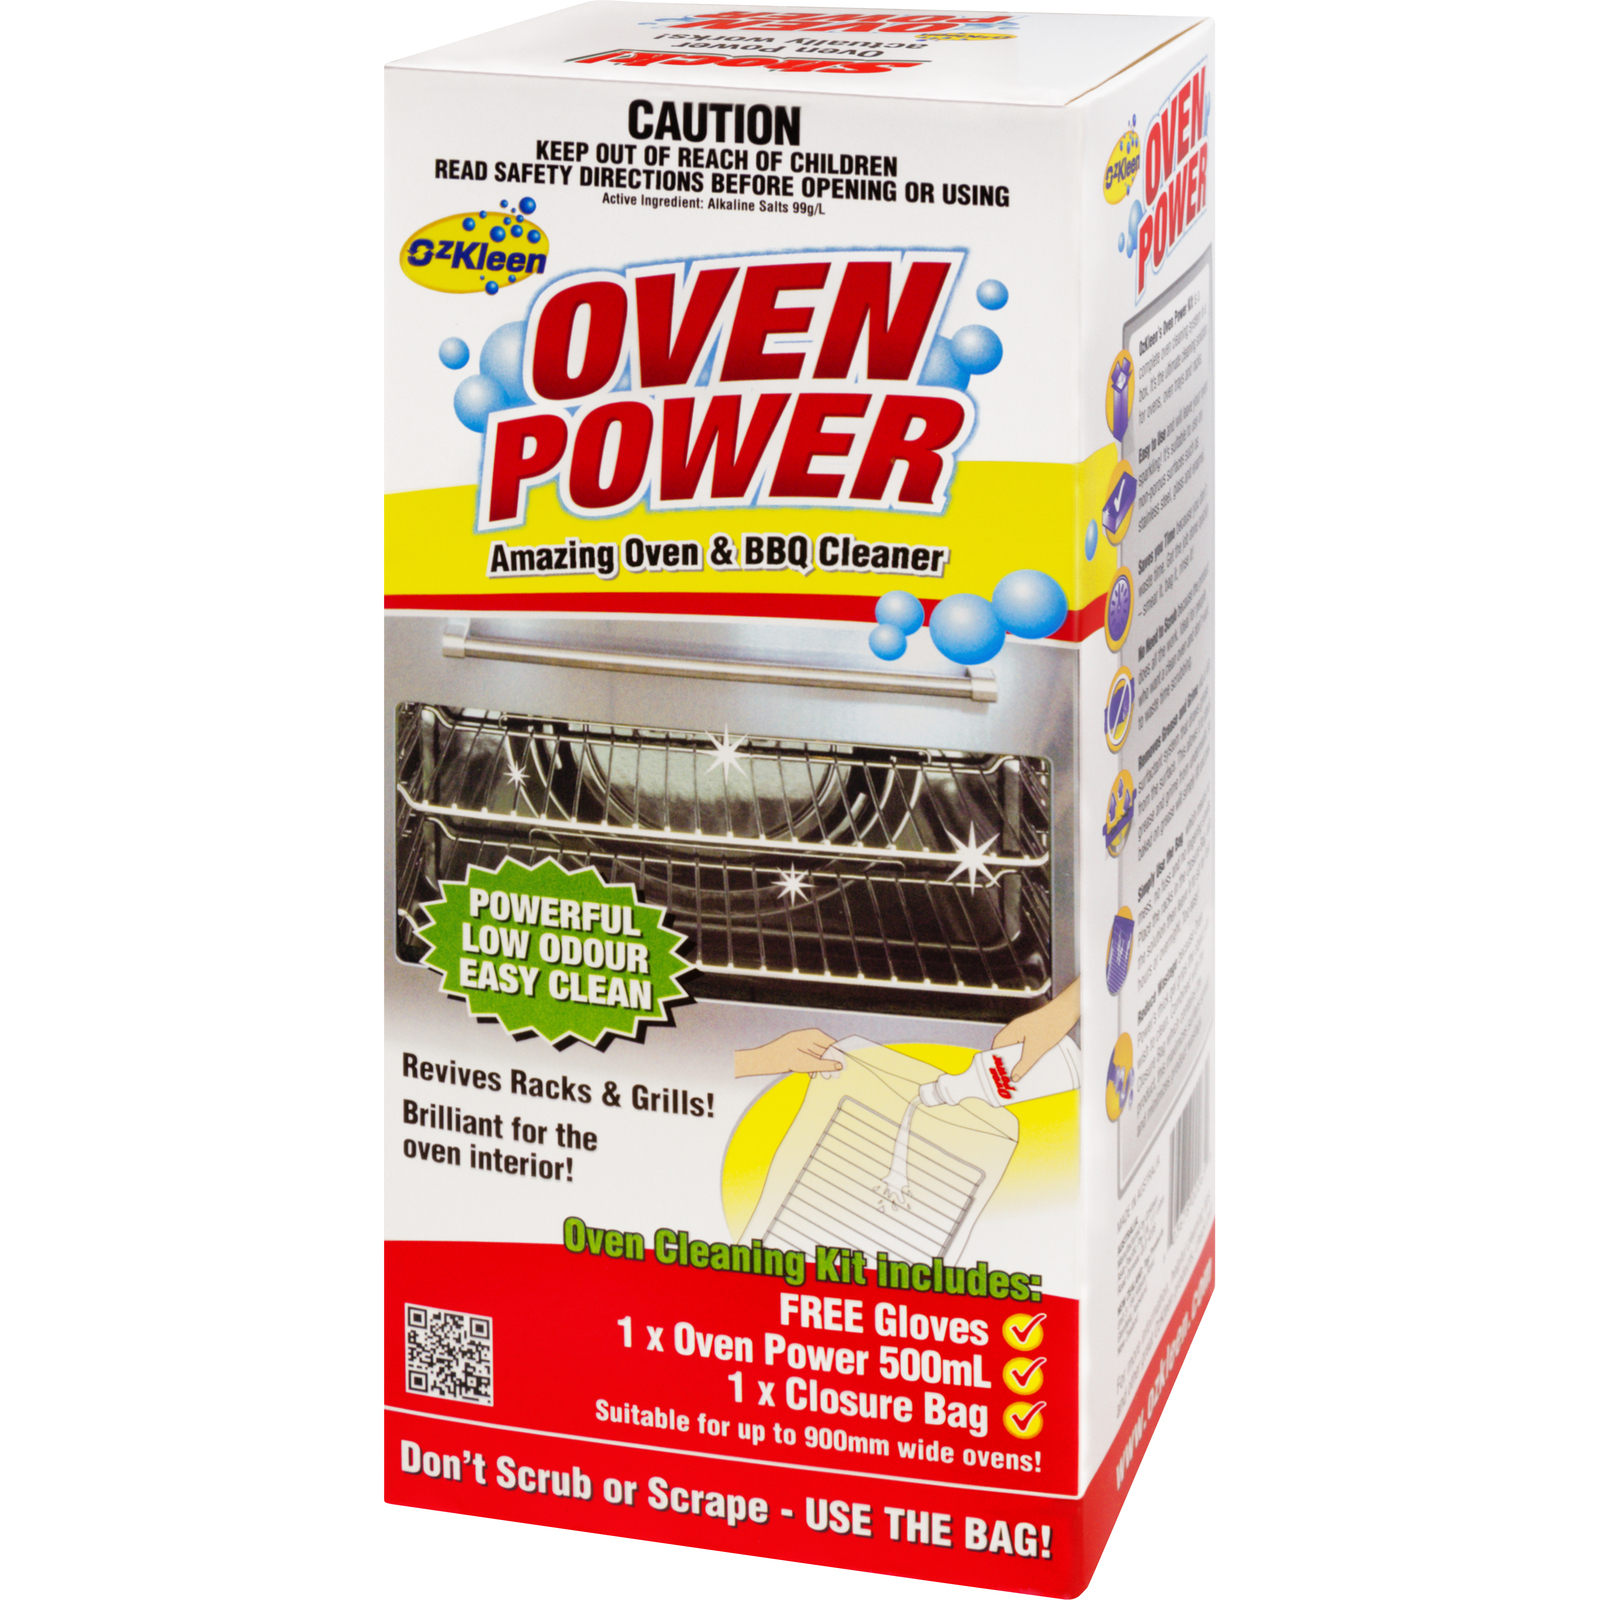 Ozkleen Oven Power Reviews Page 3